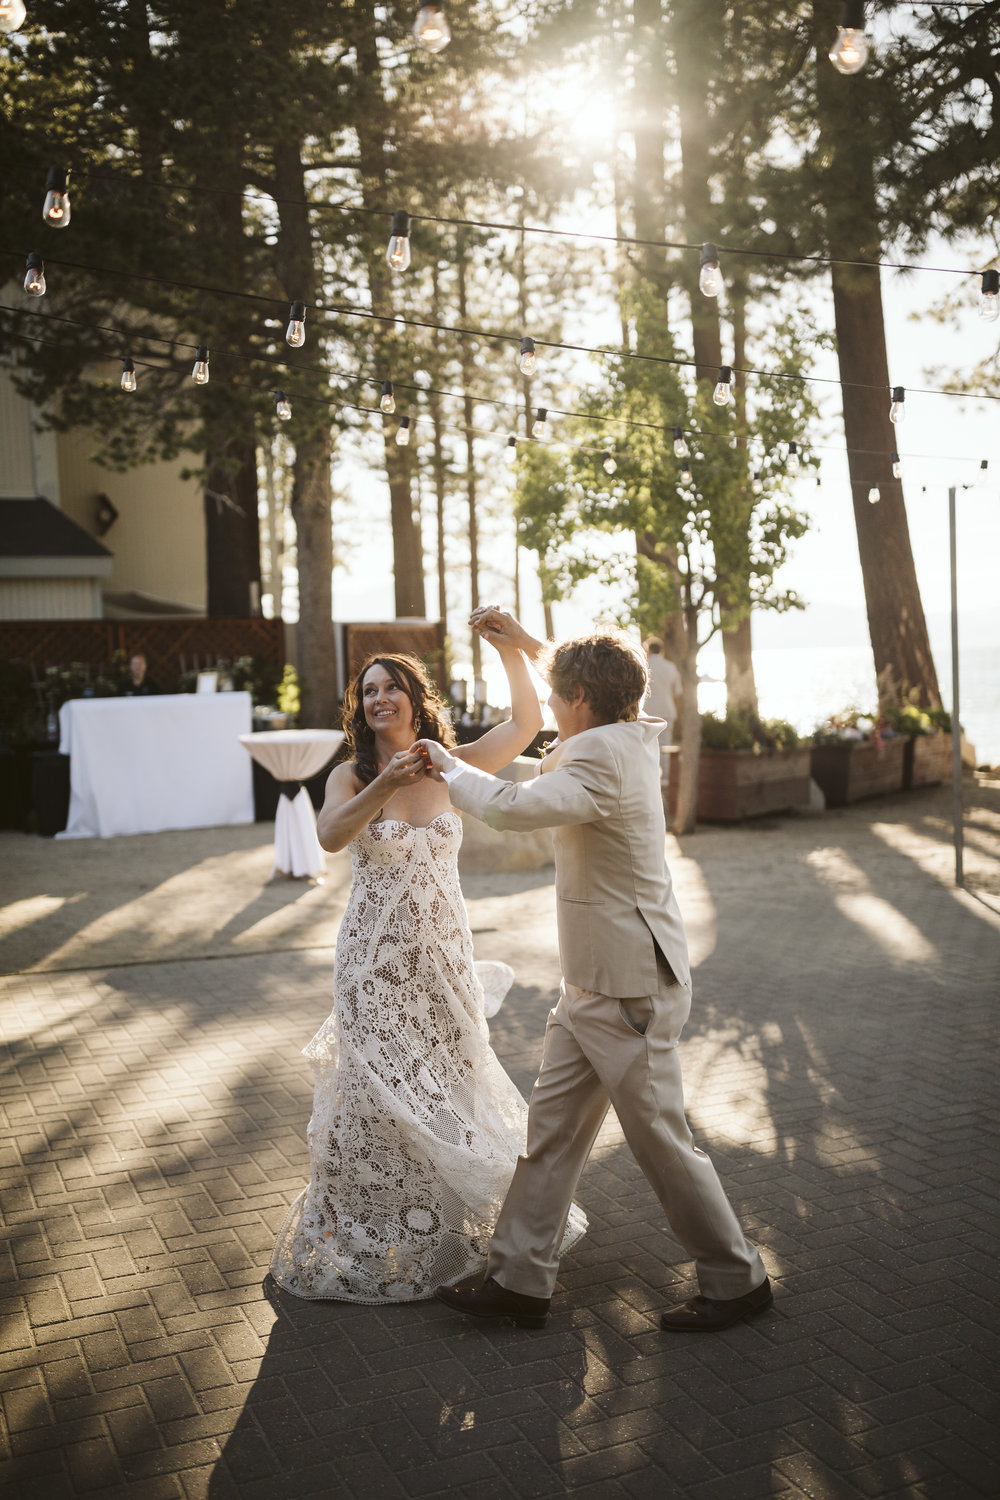 0M7A5224vildphotography-adventurewedding-tahoewedding-tahoeweddings-laketahoeweddingphotographer-californiawedding-shelly-cody.jpg